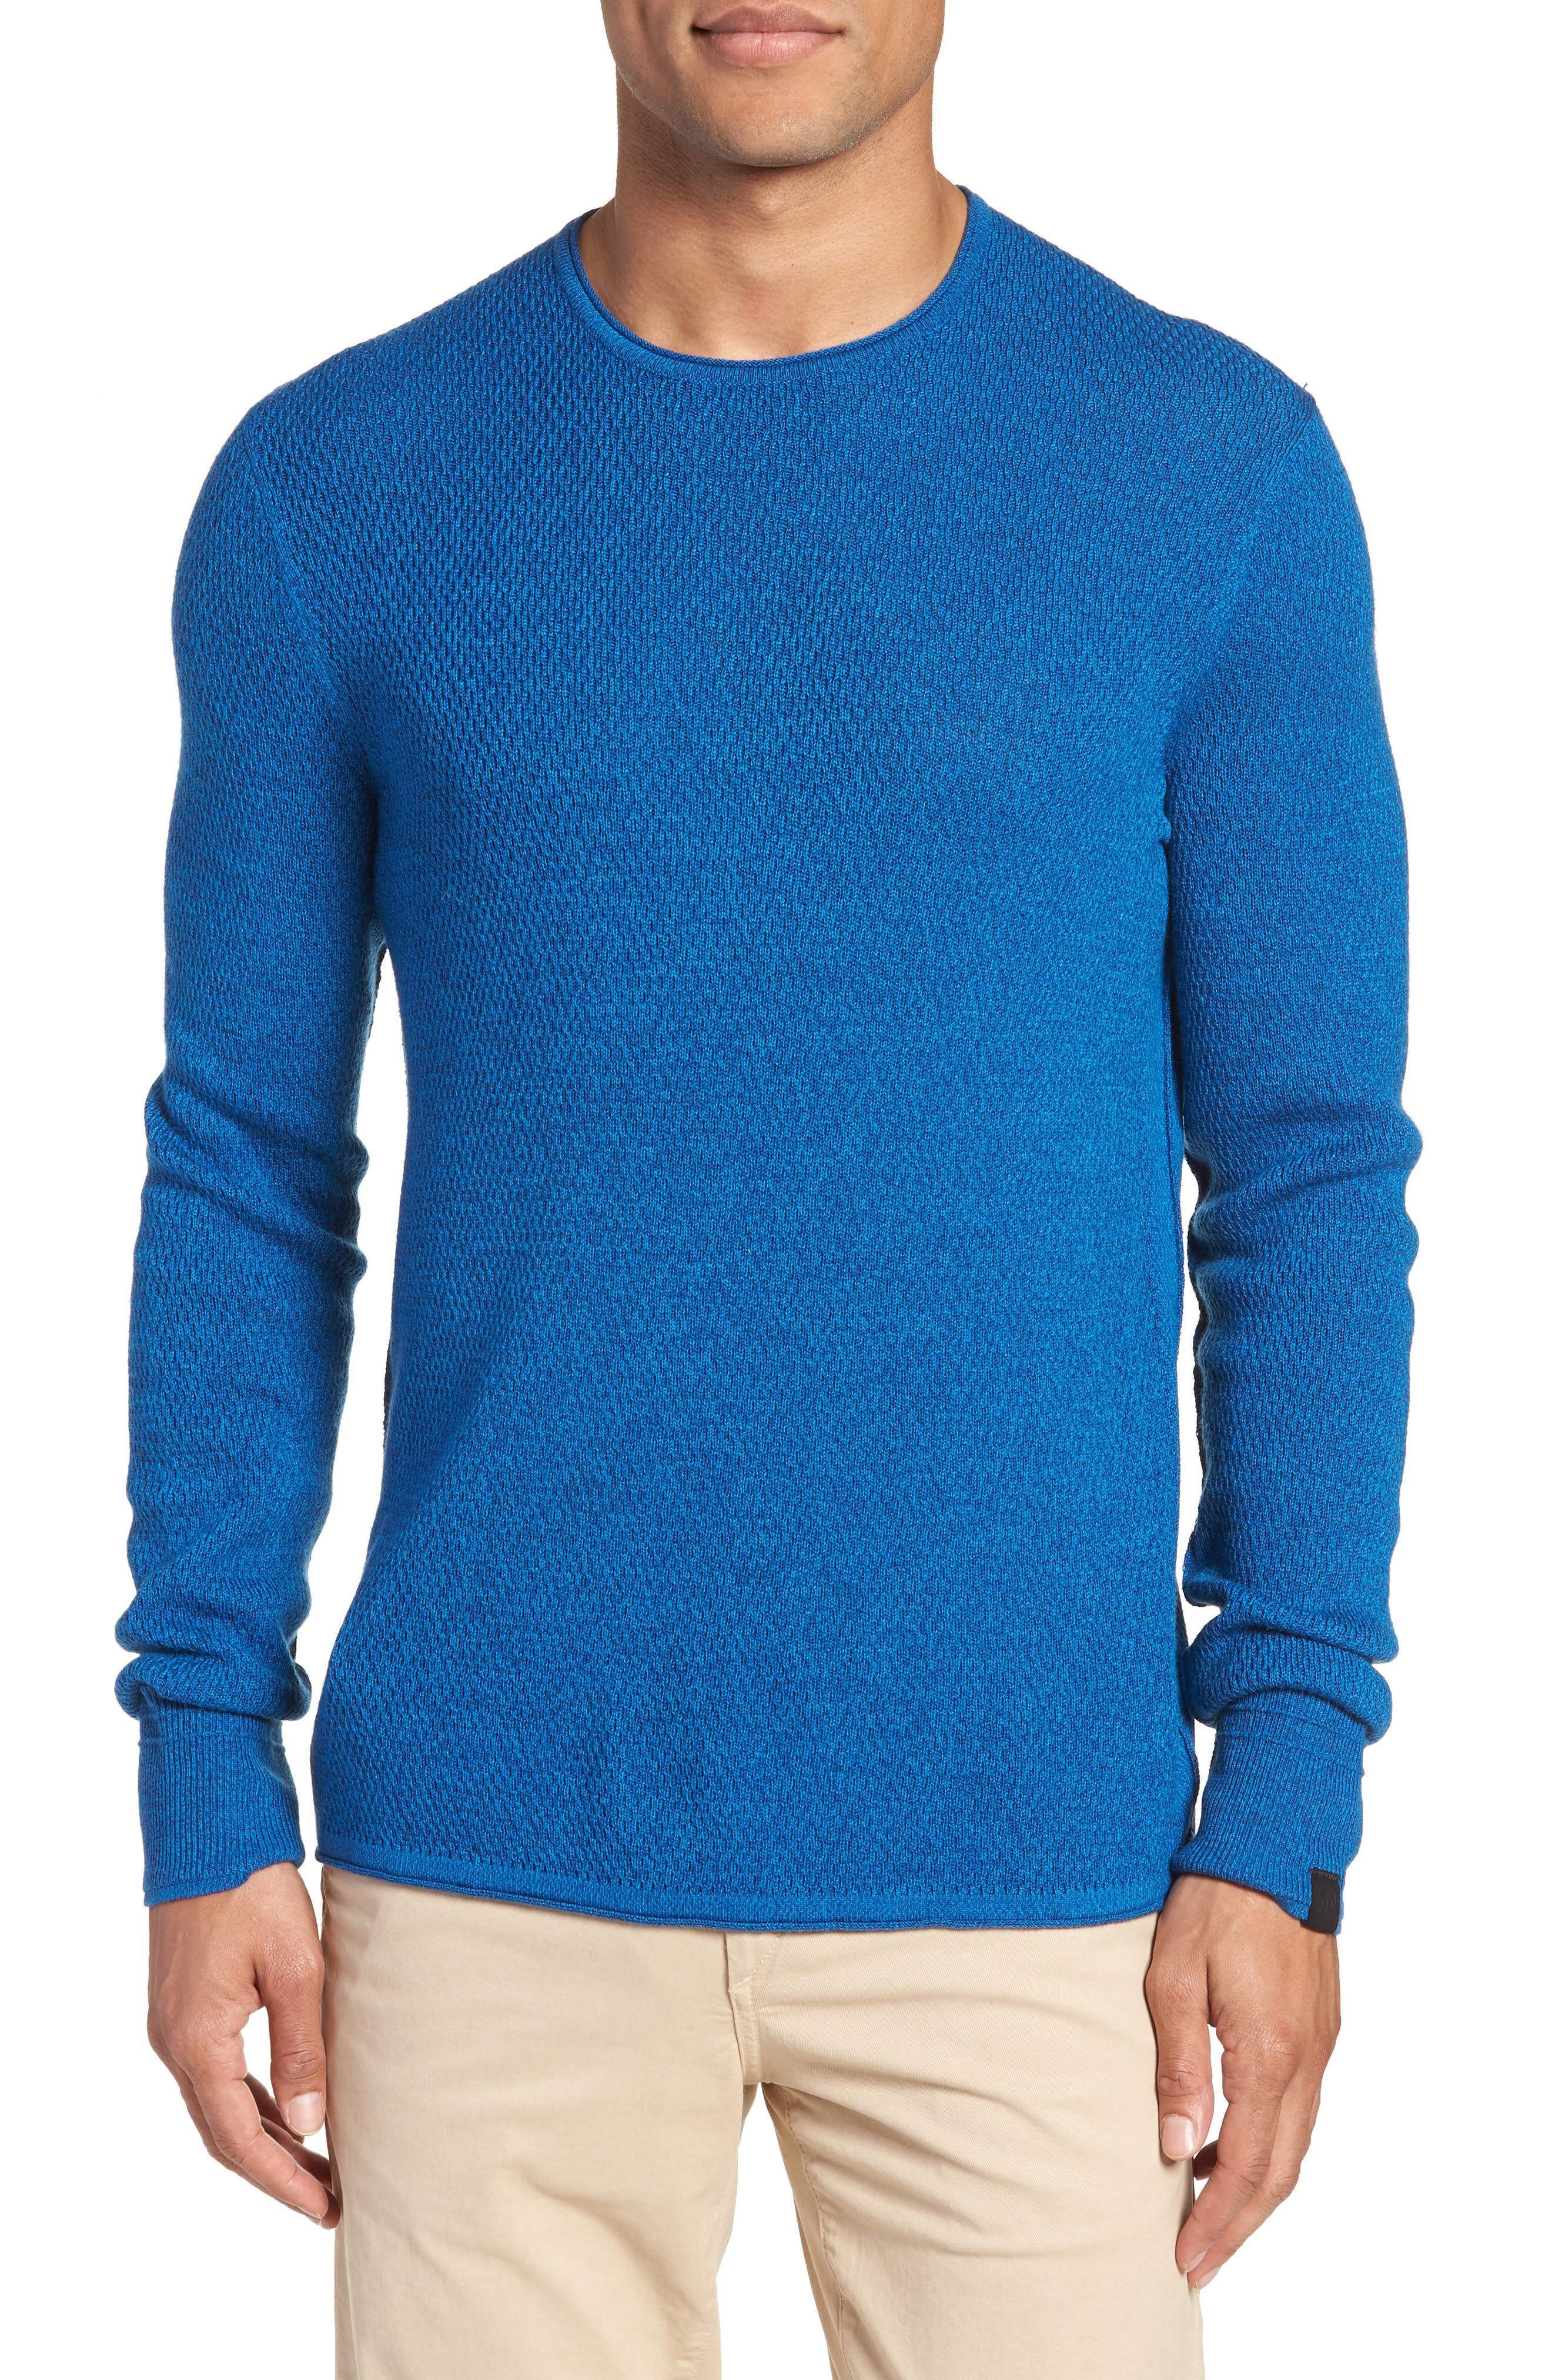 Gregory Wool Blend Crewneck Sweater,                         Main,                         color, Bright Blue